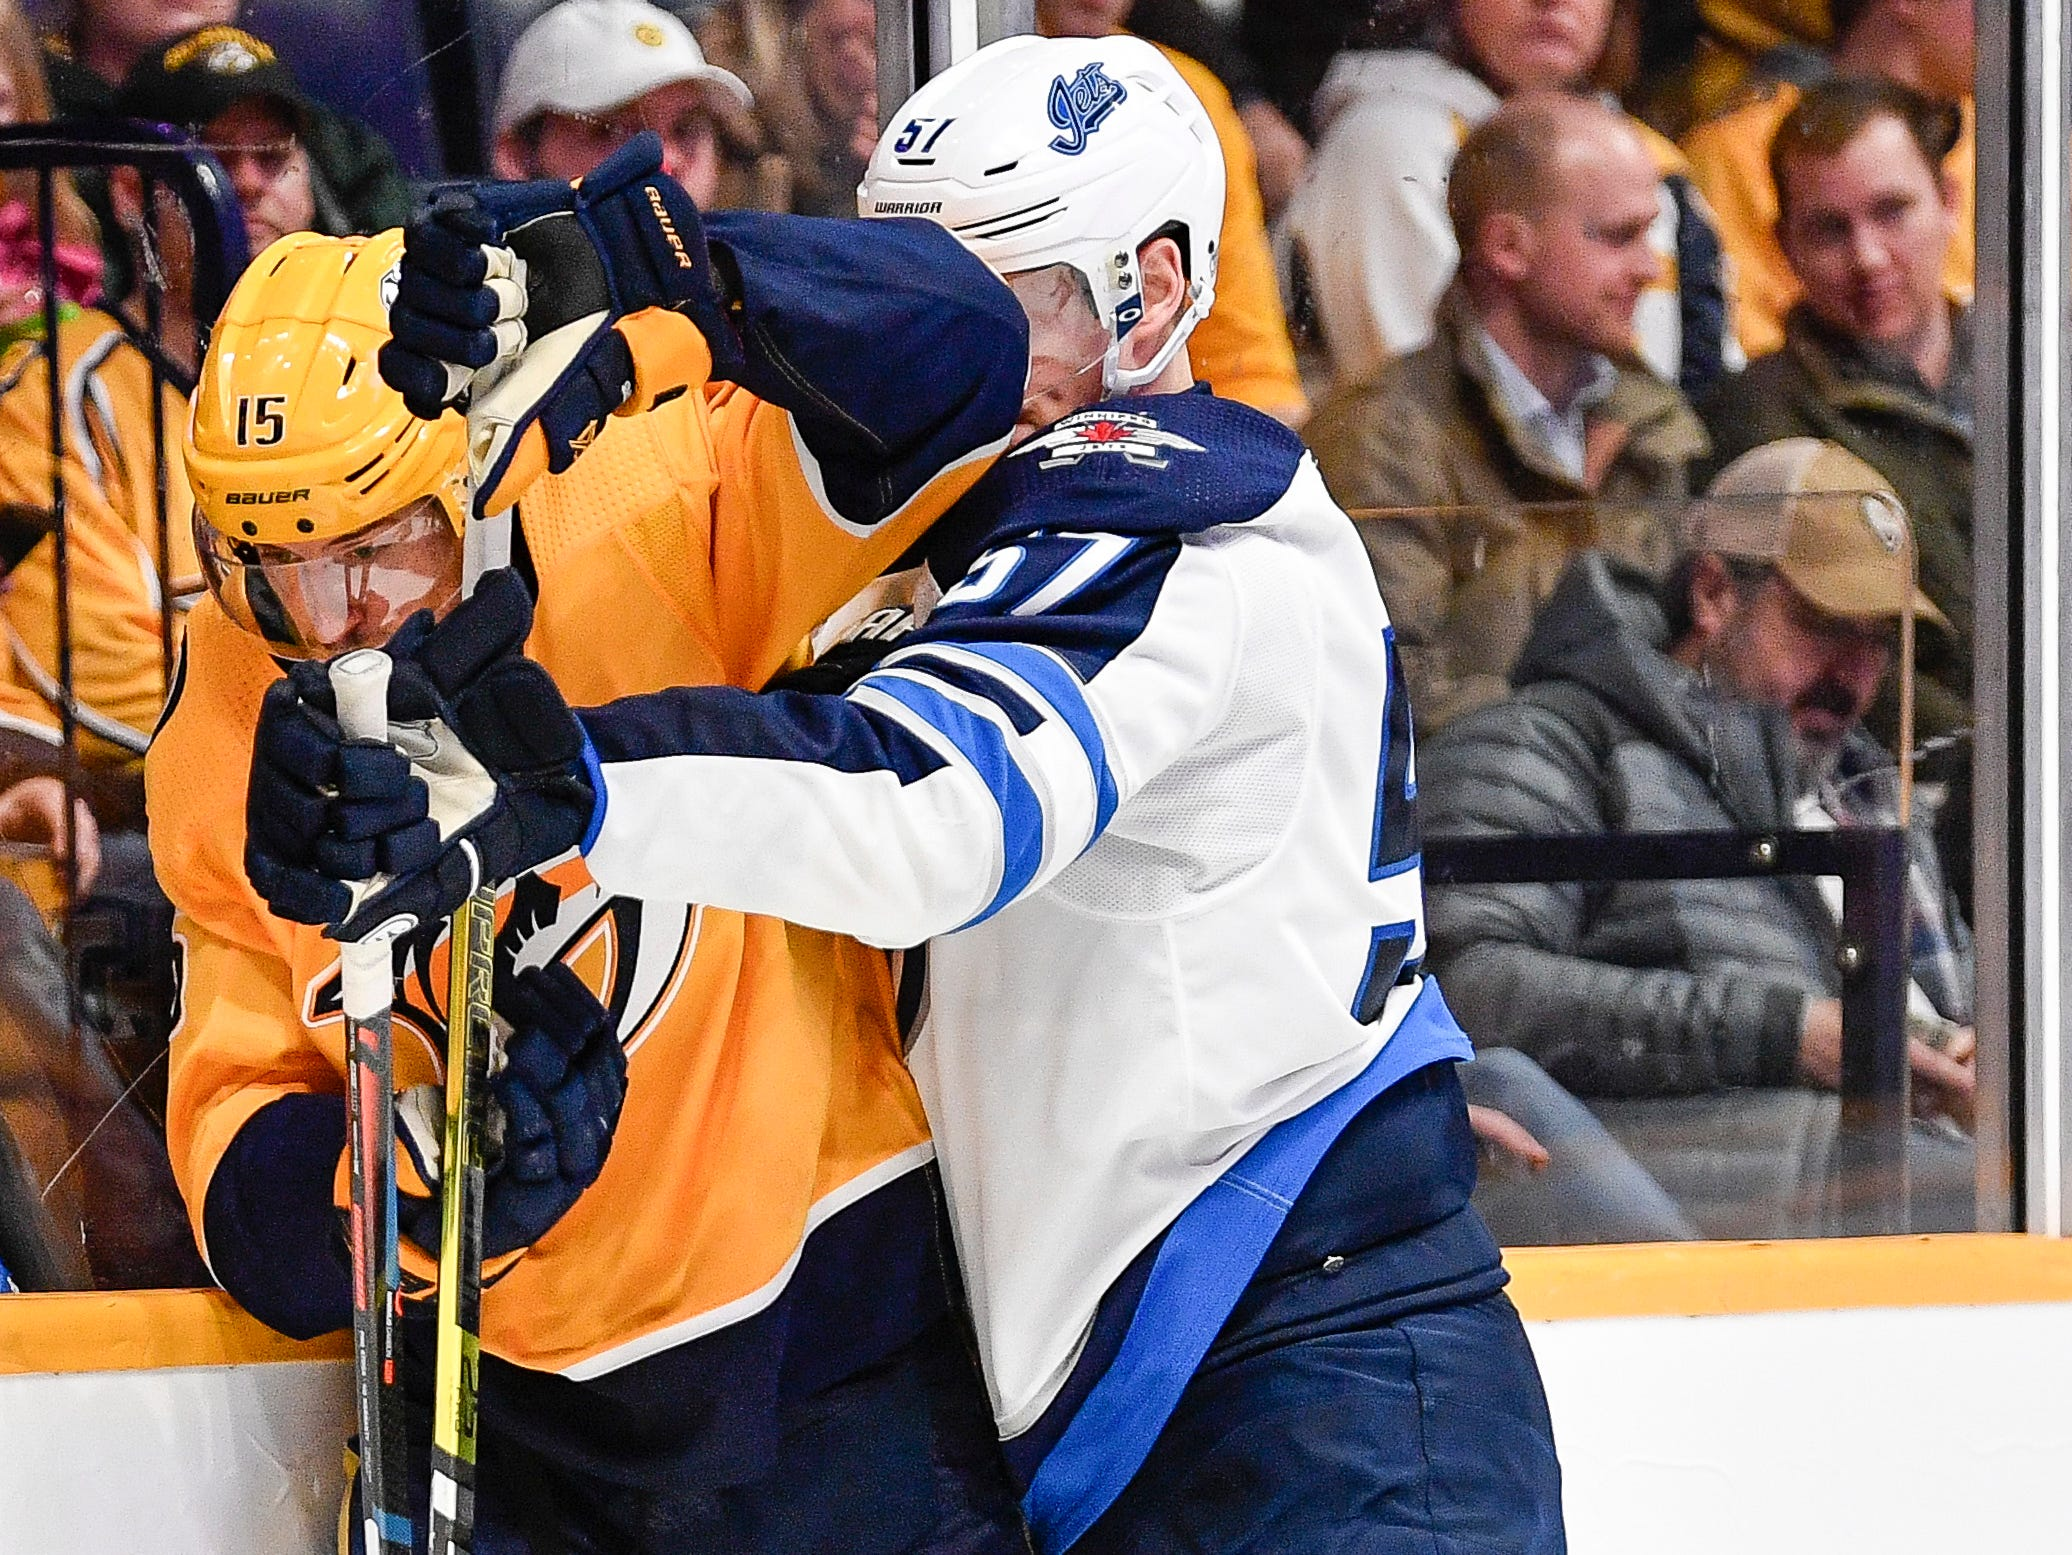 Nashville Predators right wing Craig Smith (15) battles Winnipeg Jets defenseman Tyler Myers (57) during the third period at Bridgestone Arena in Nashville, Tenn., Thursday, Jan. 17, 2019.